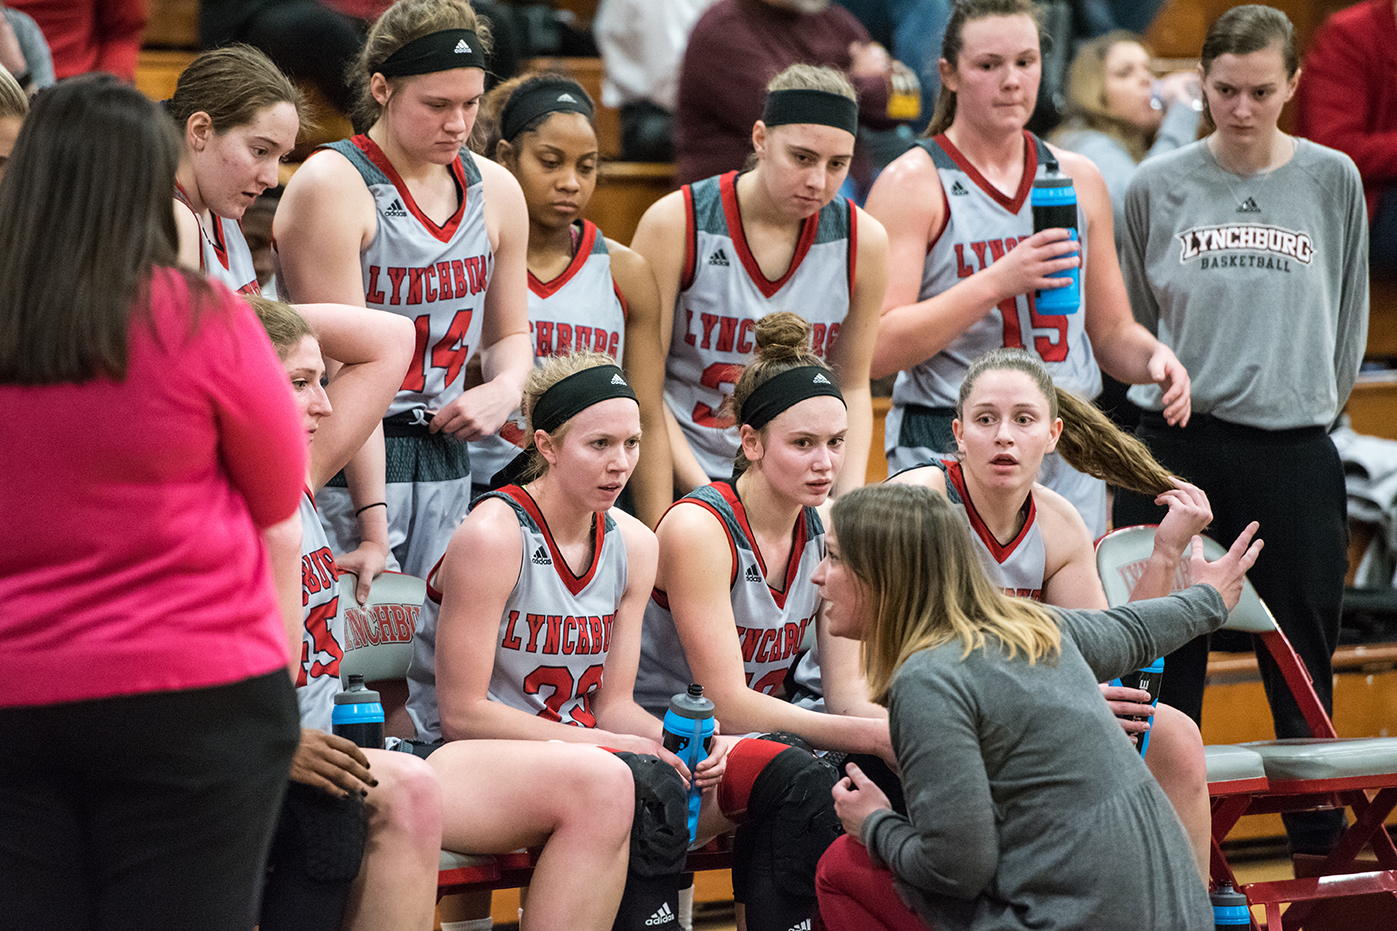 Lynchburg women's basketball watches Coach during a timeout.